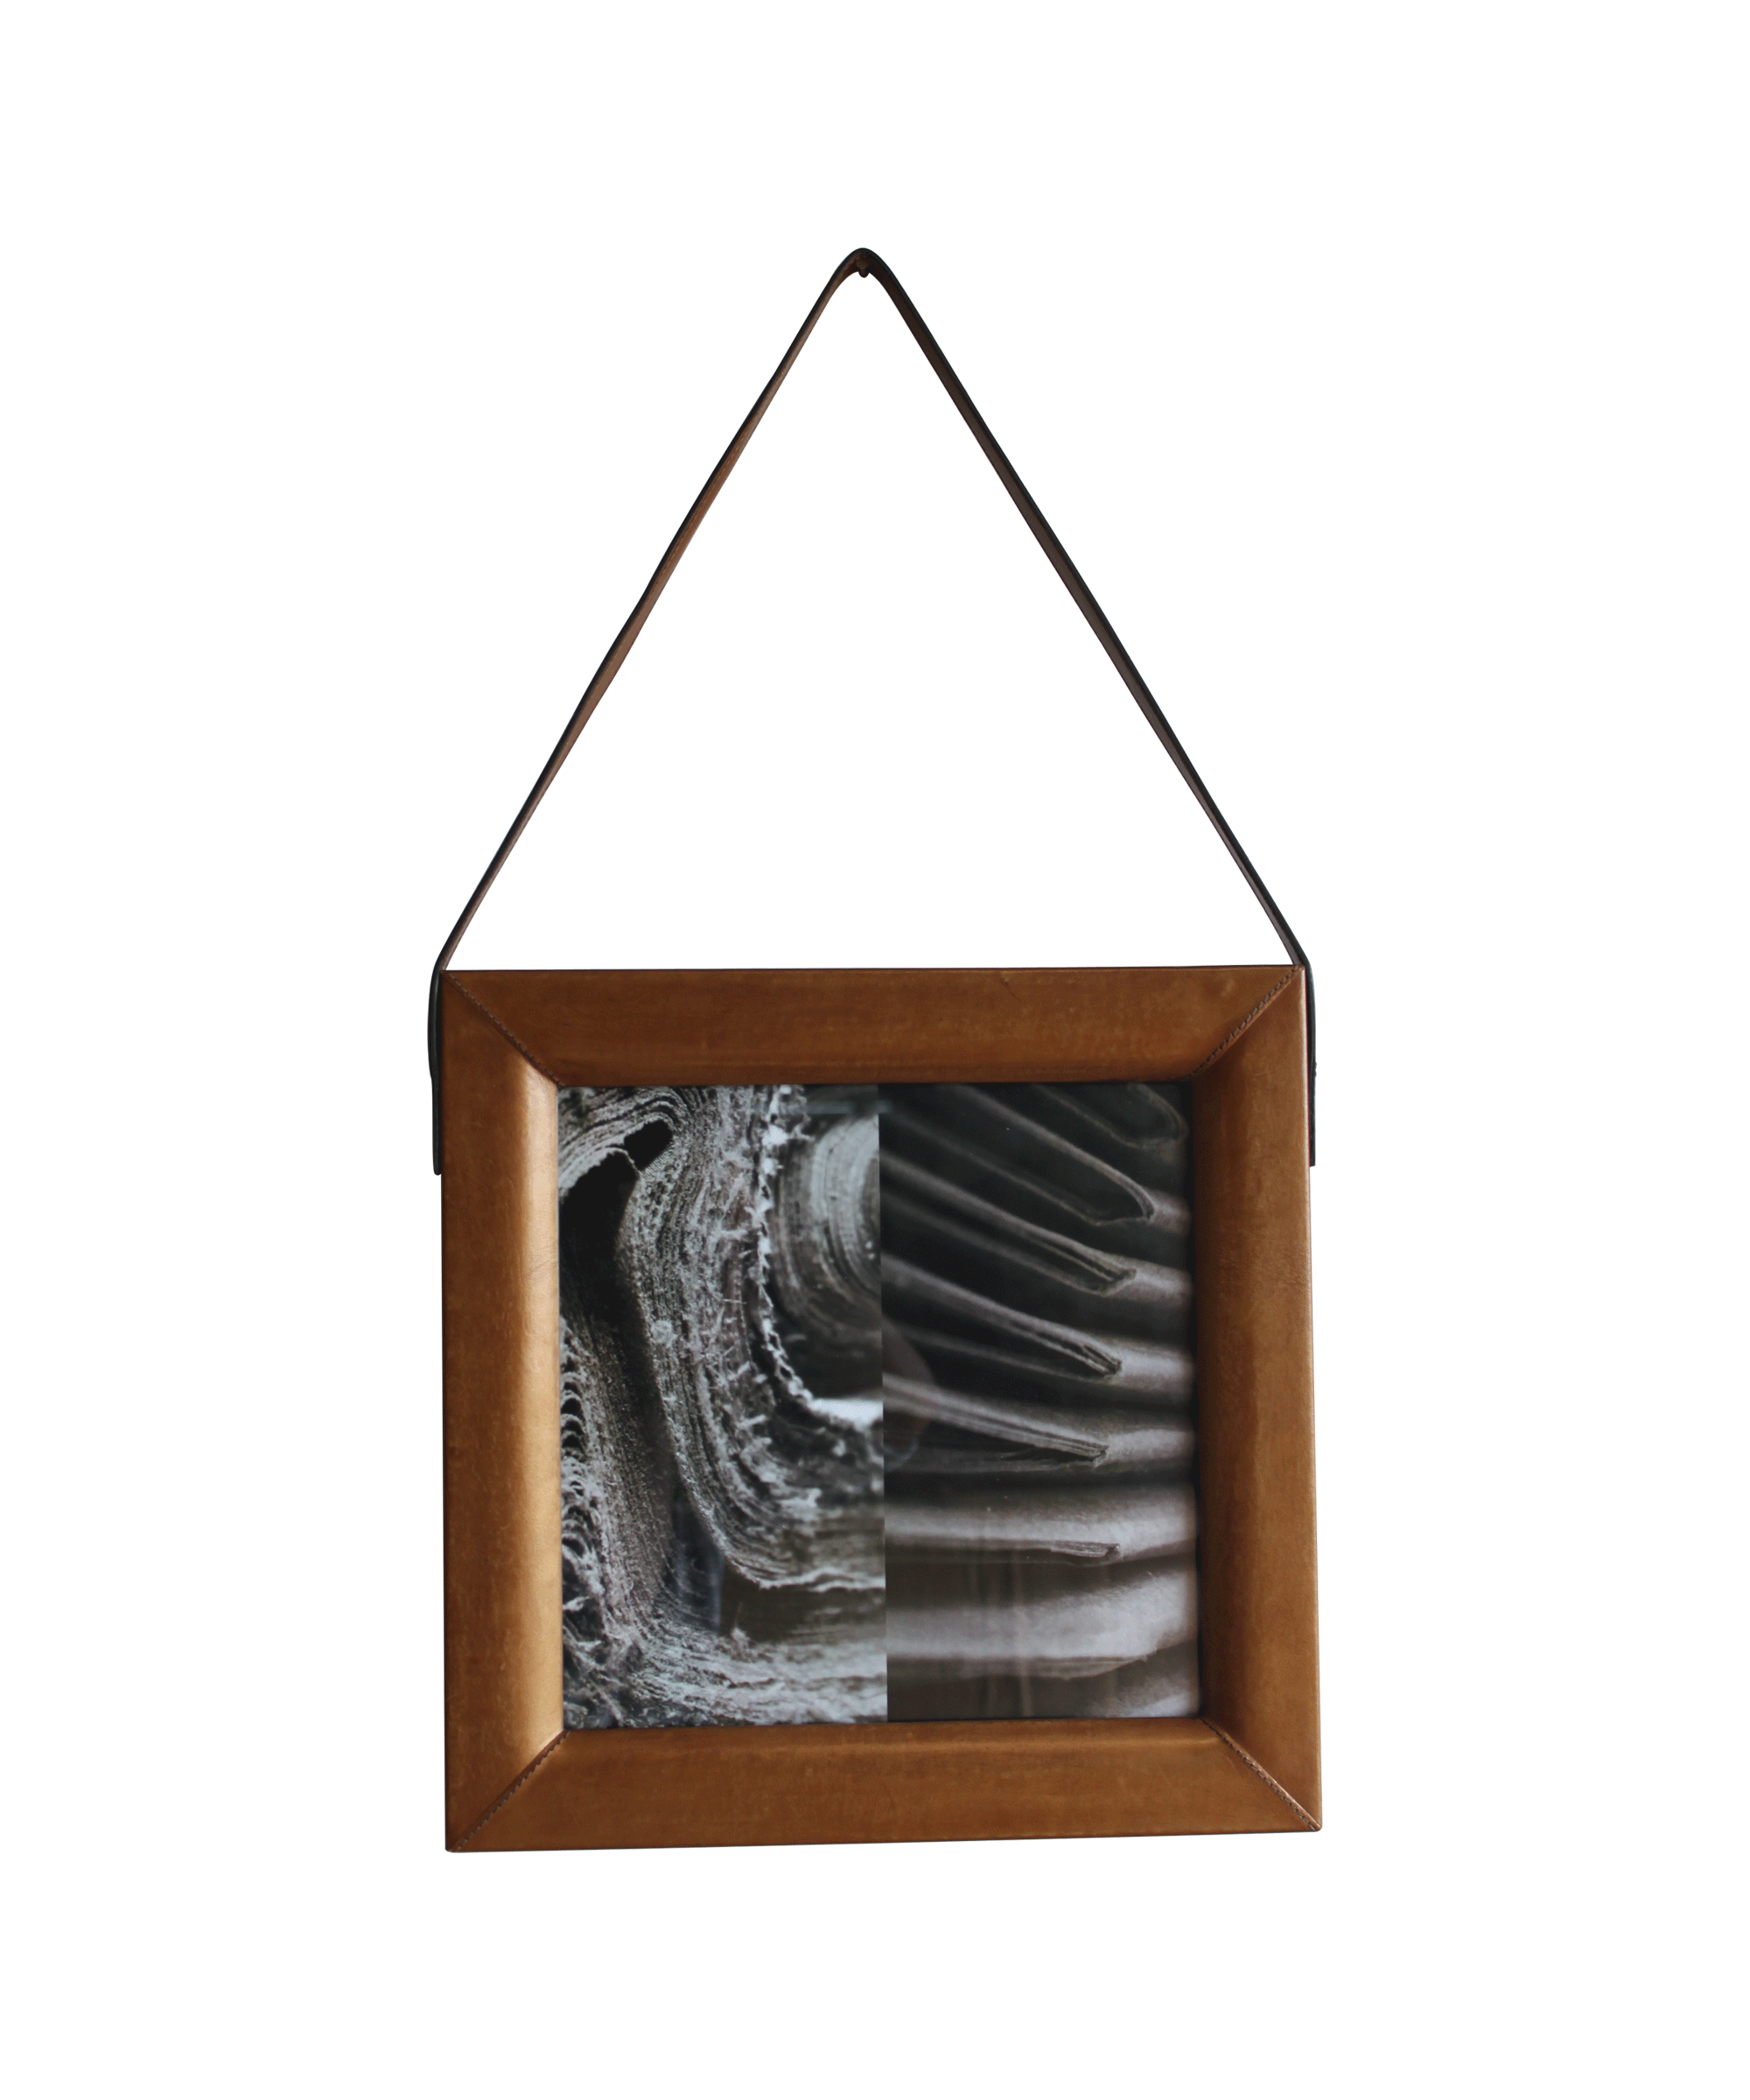 Wall picture frame square portsidecaf for Picture frame organization wall